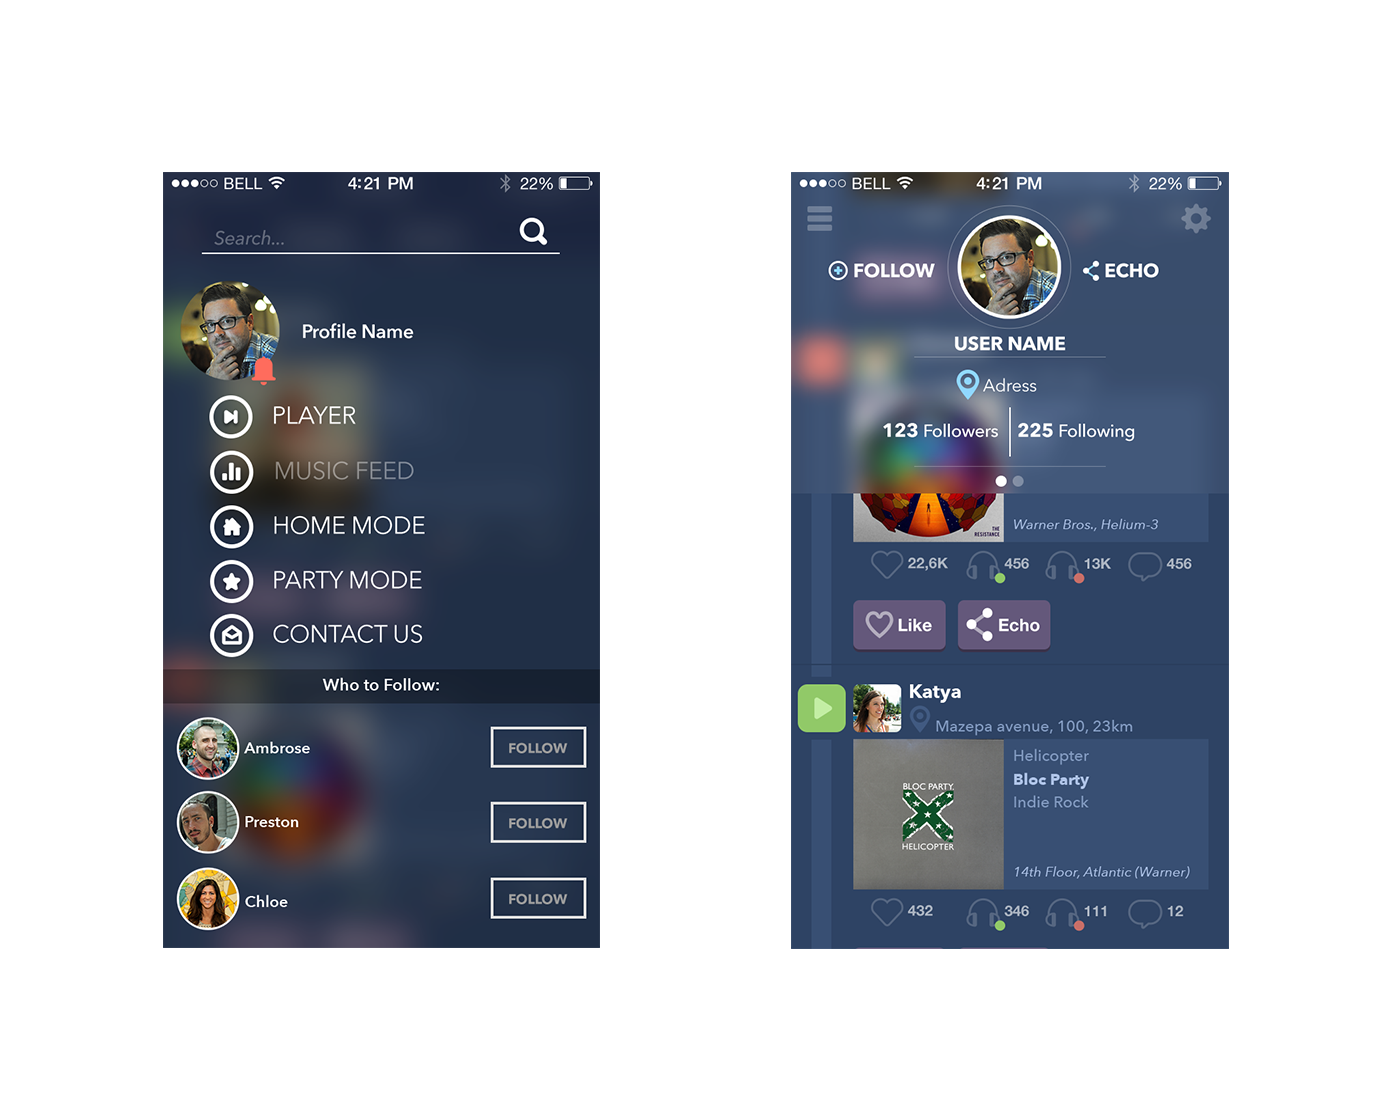 Navigation Menu and Profile screens for Echo case study